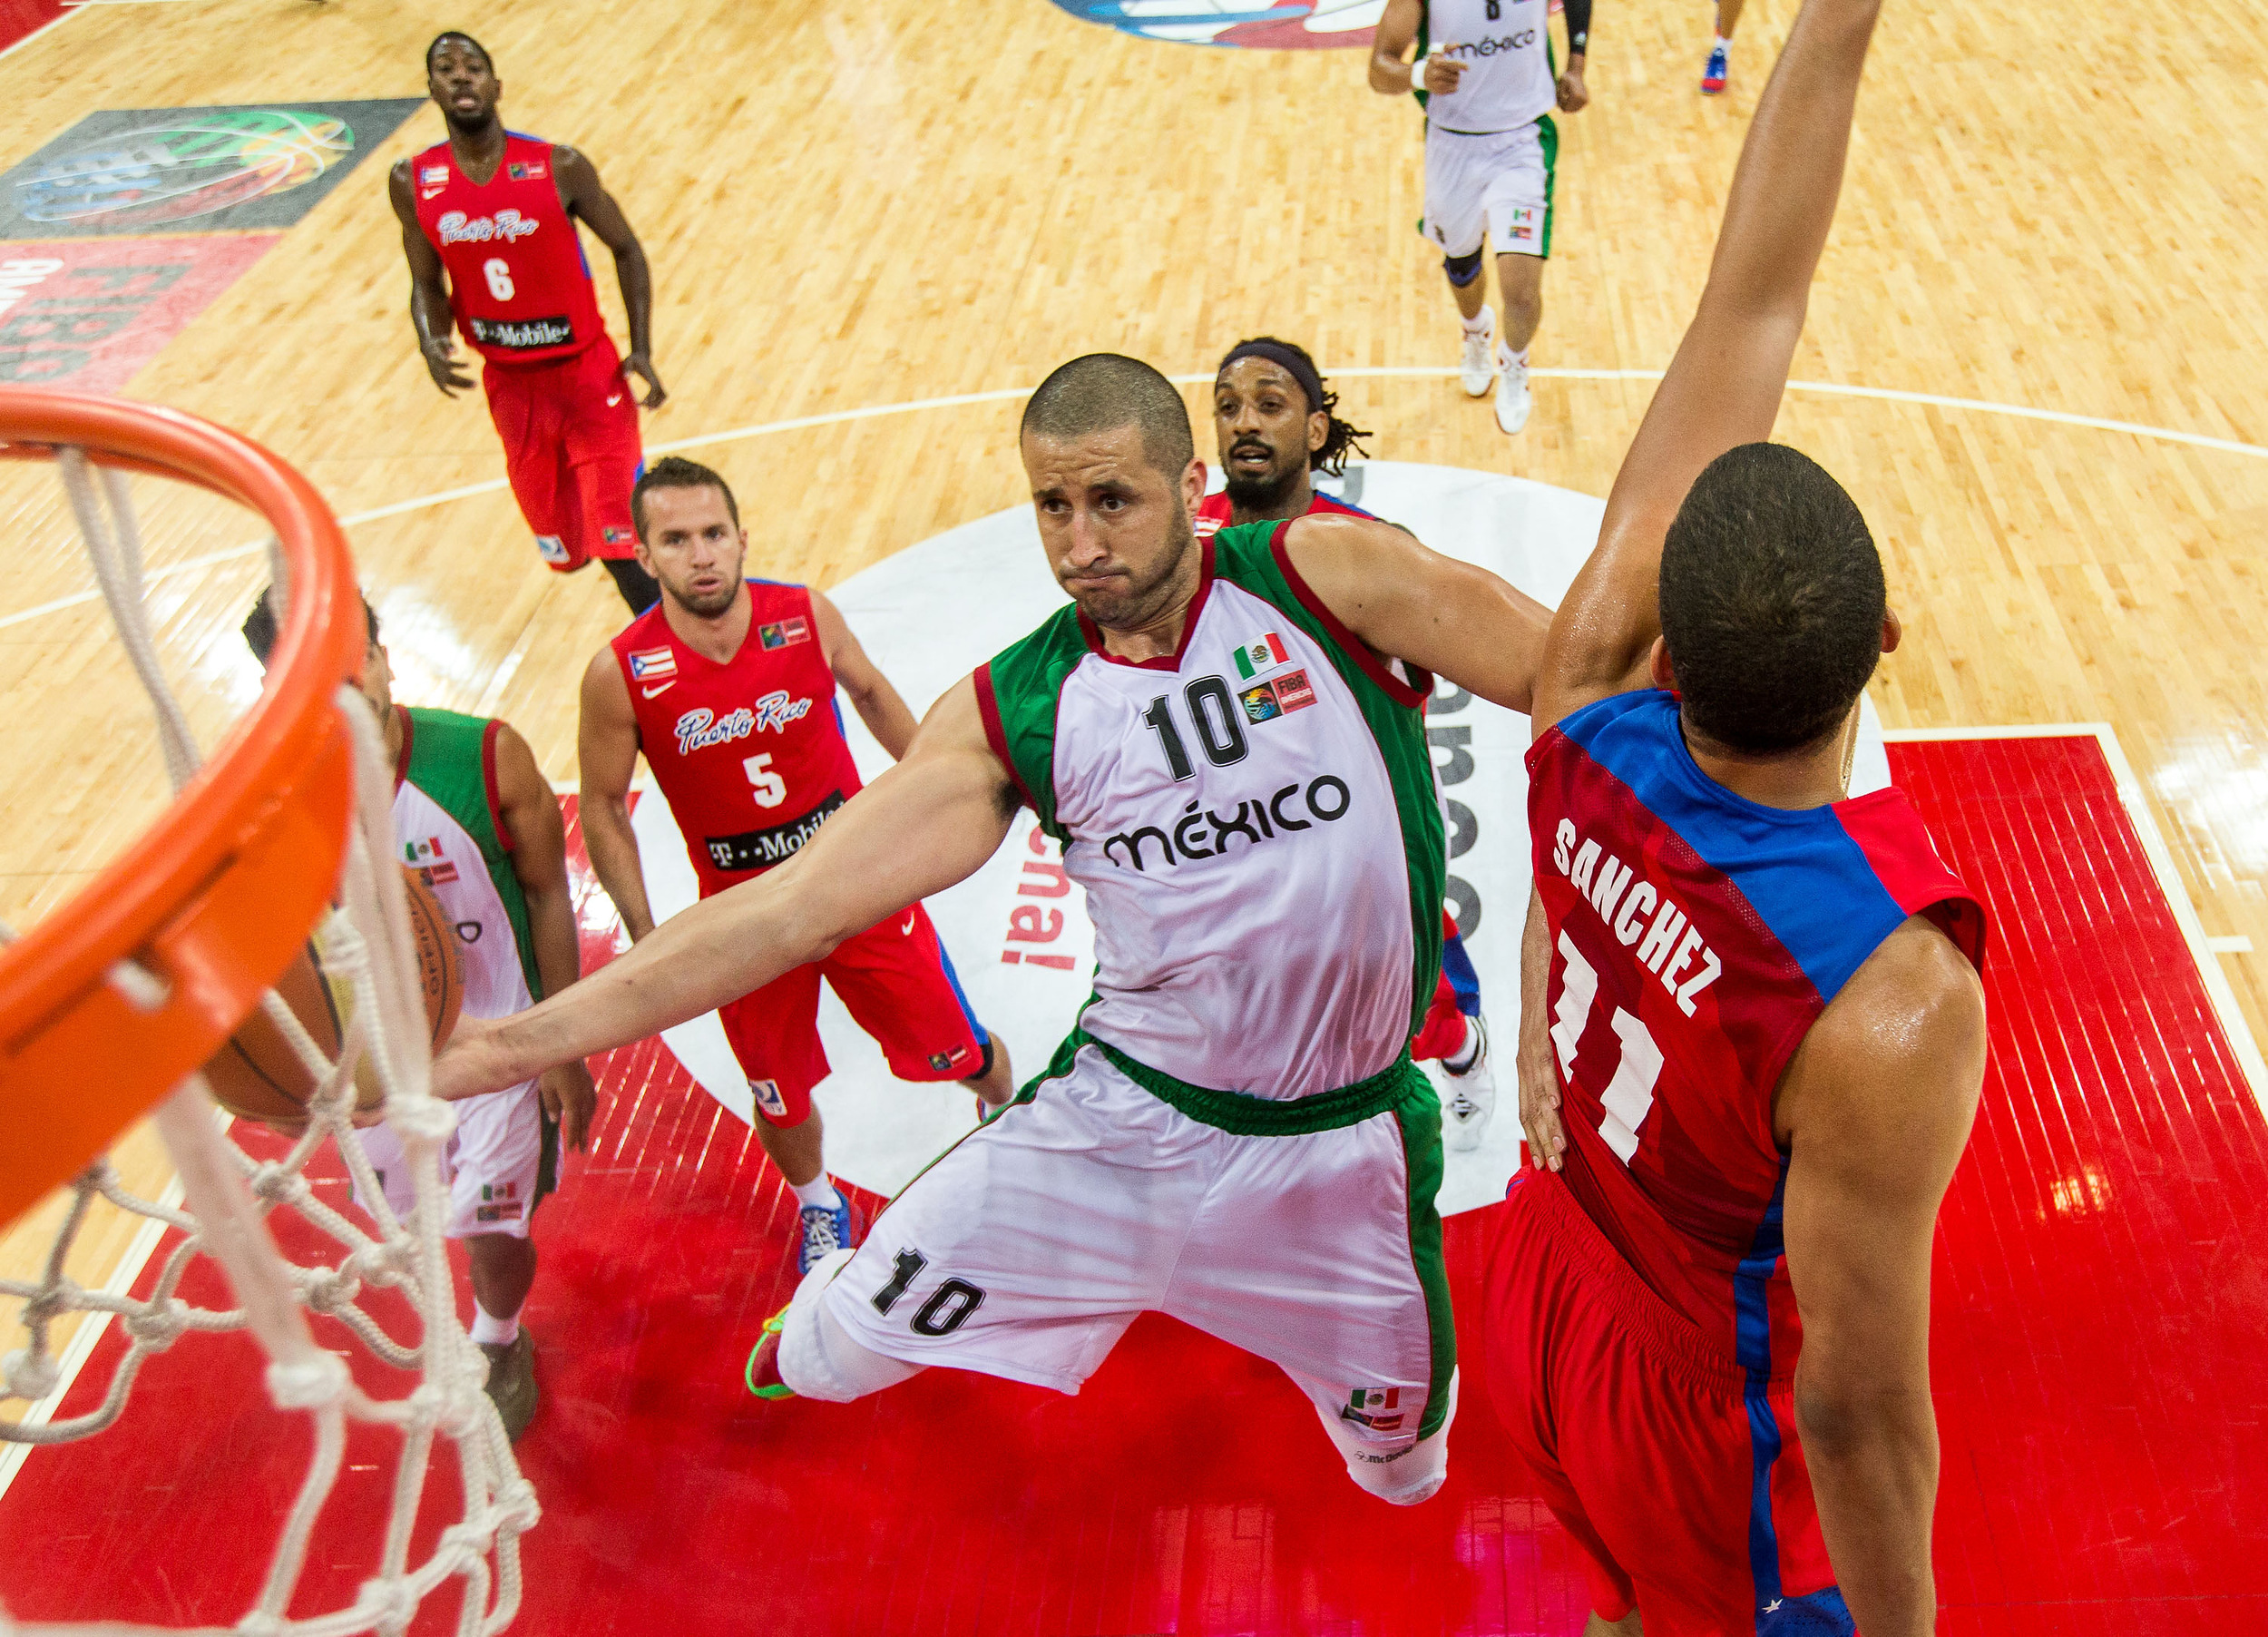 Mexico's Hector Hernandez extends past the defense of Puerto Rico's Ricardo Sanchez for an acrobatic finish in the FIBA Americas Championship games. Mexico went on to qualify for the 2014 World Cup in Spain and win the championship over Puerto Rico.